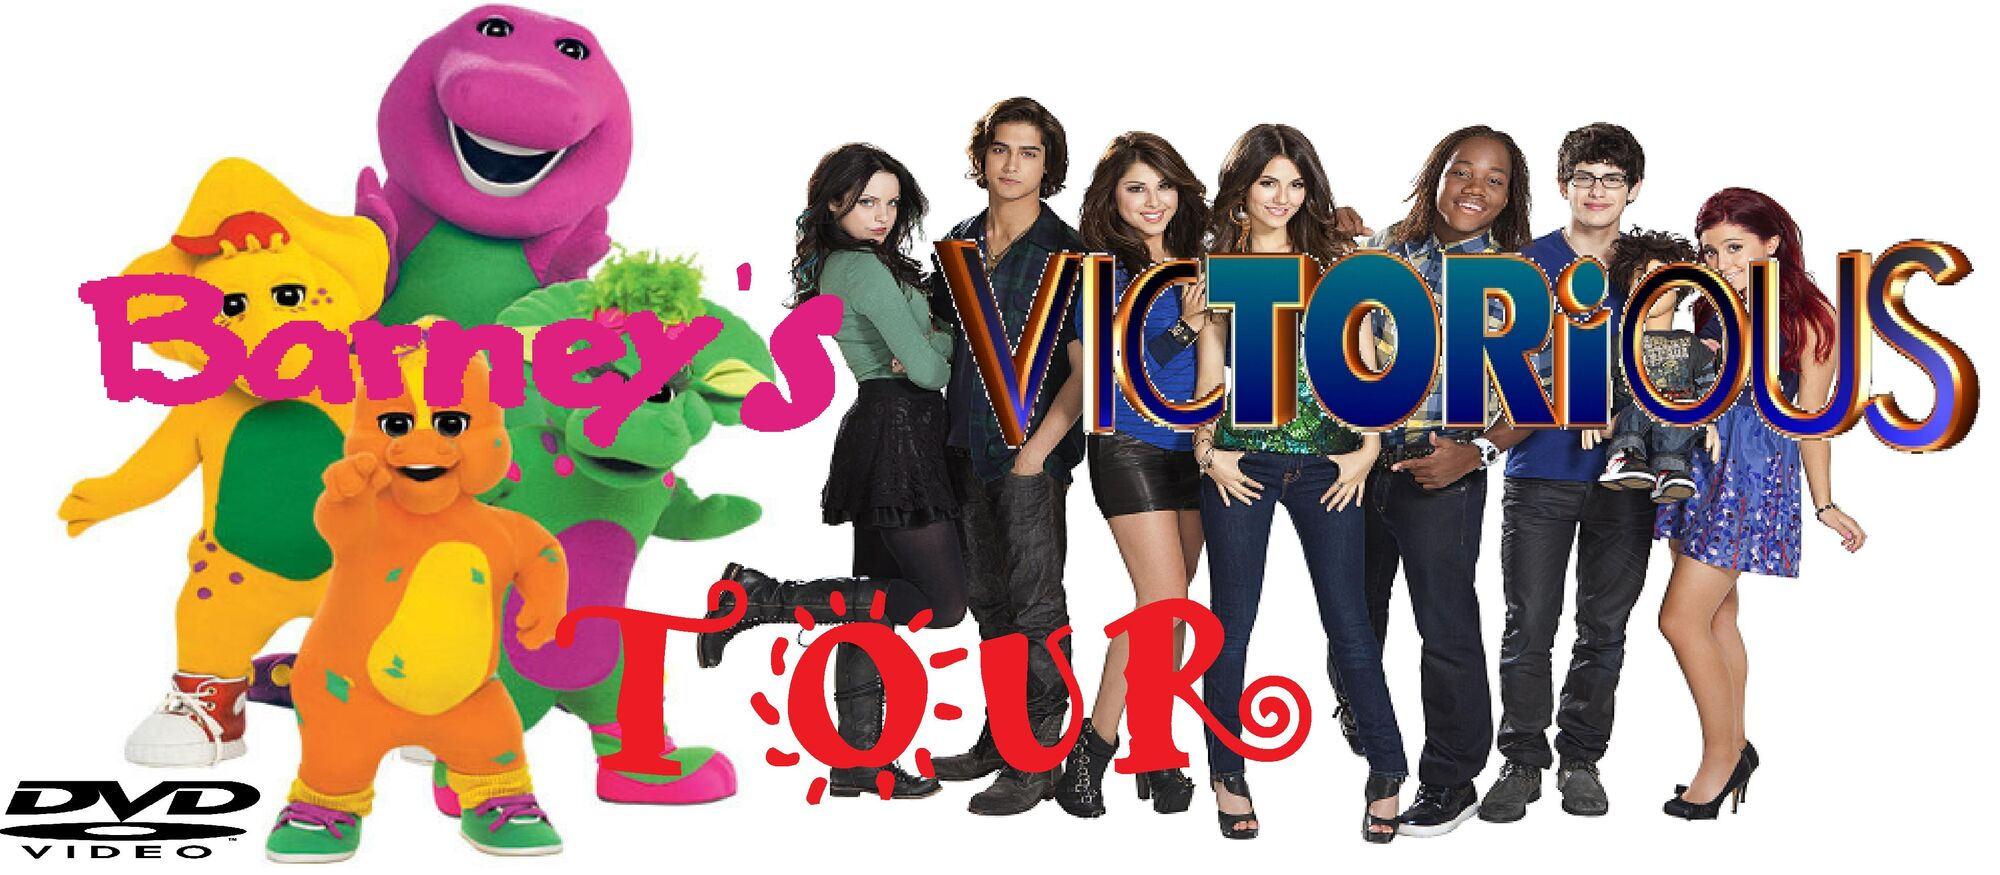 barney u0027s victorious tour custom barney wiki fandom powered by